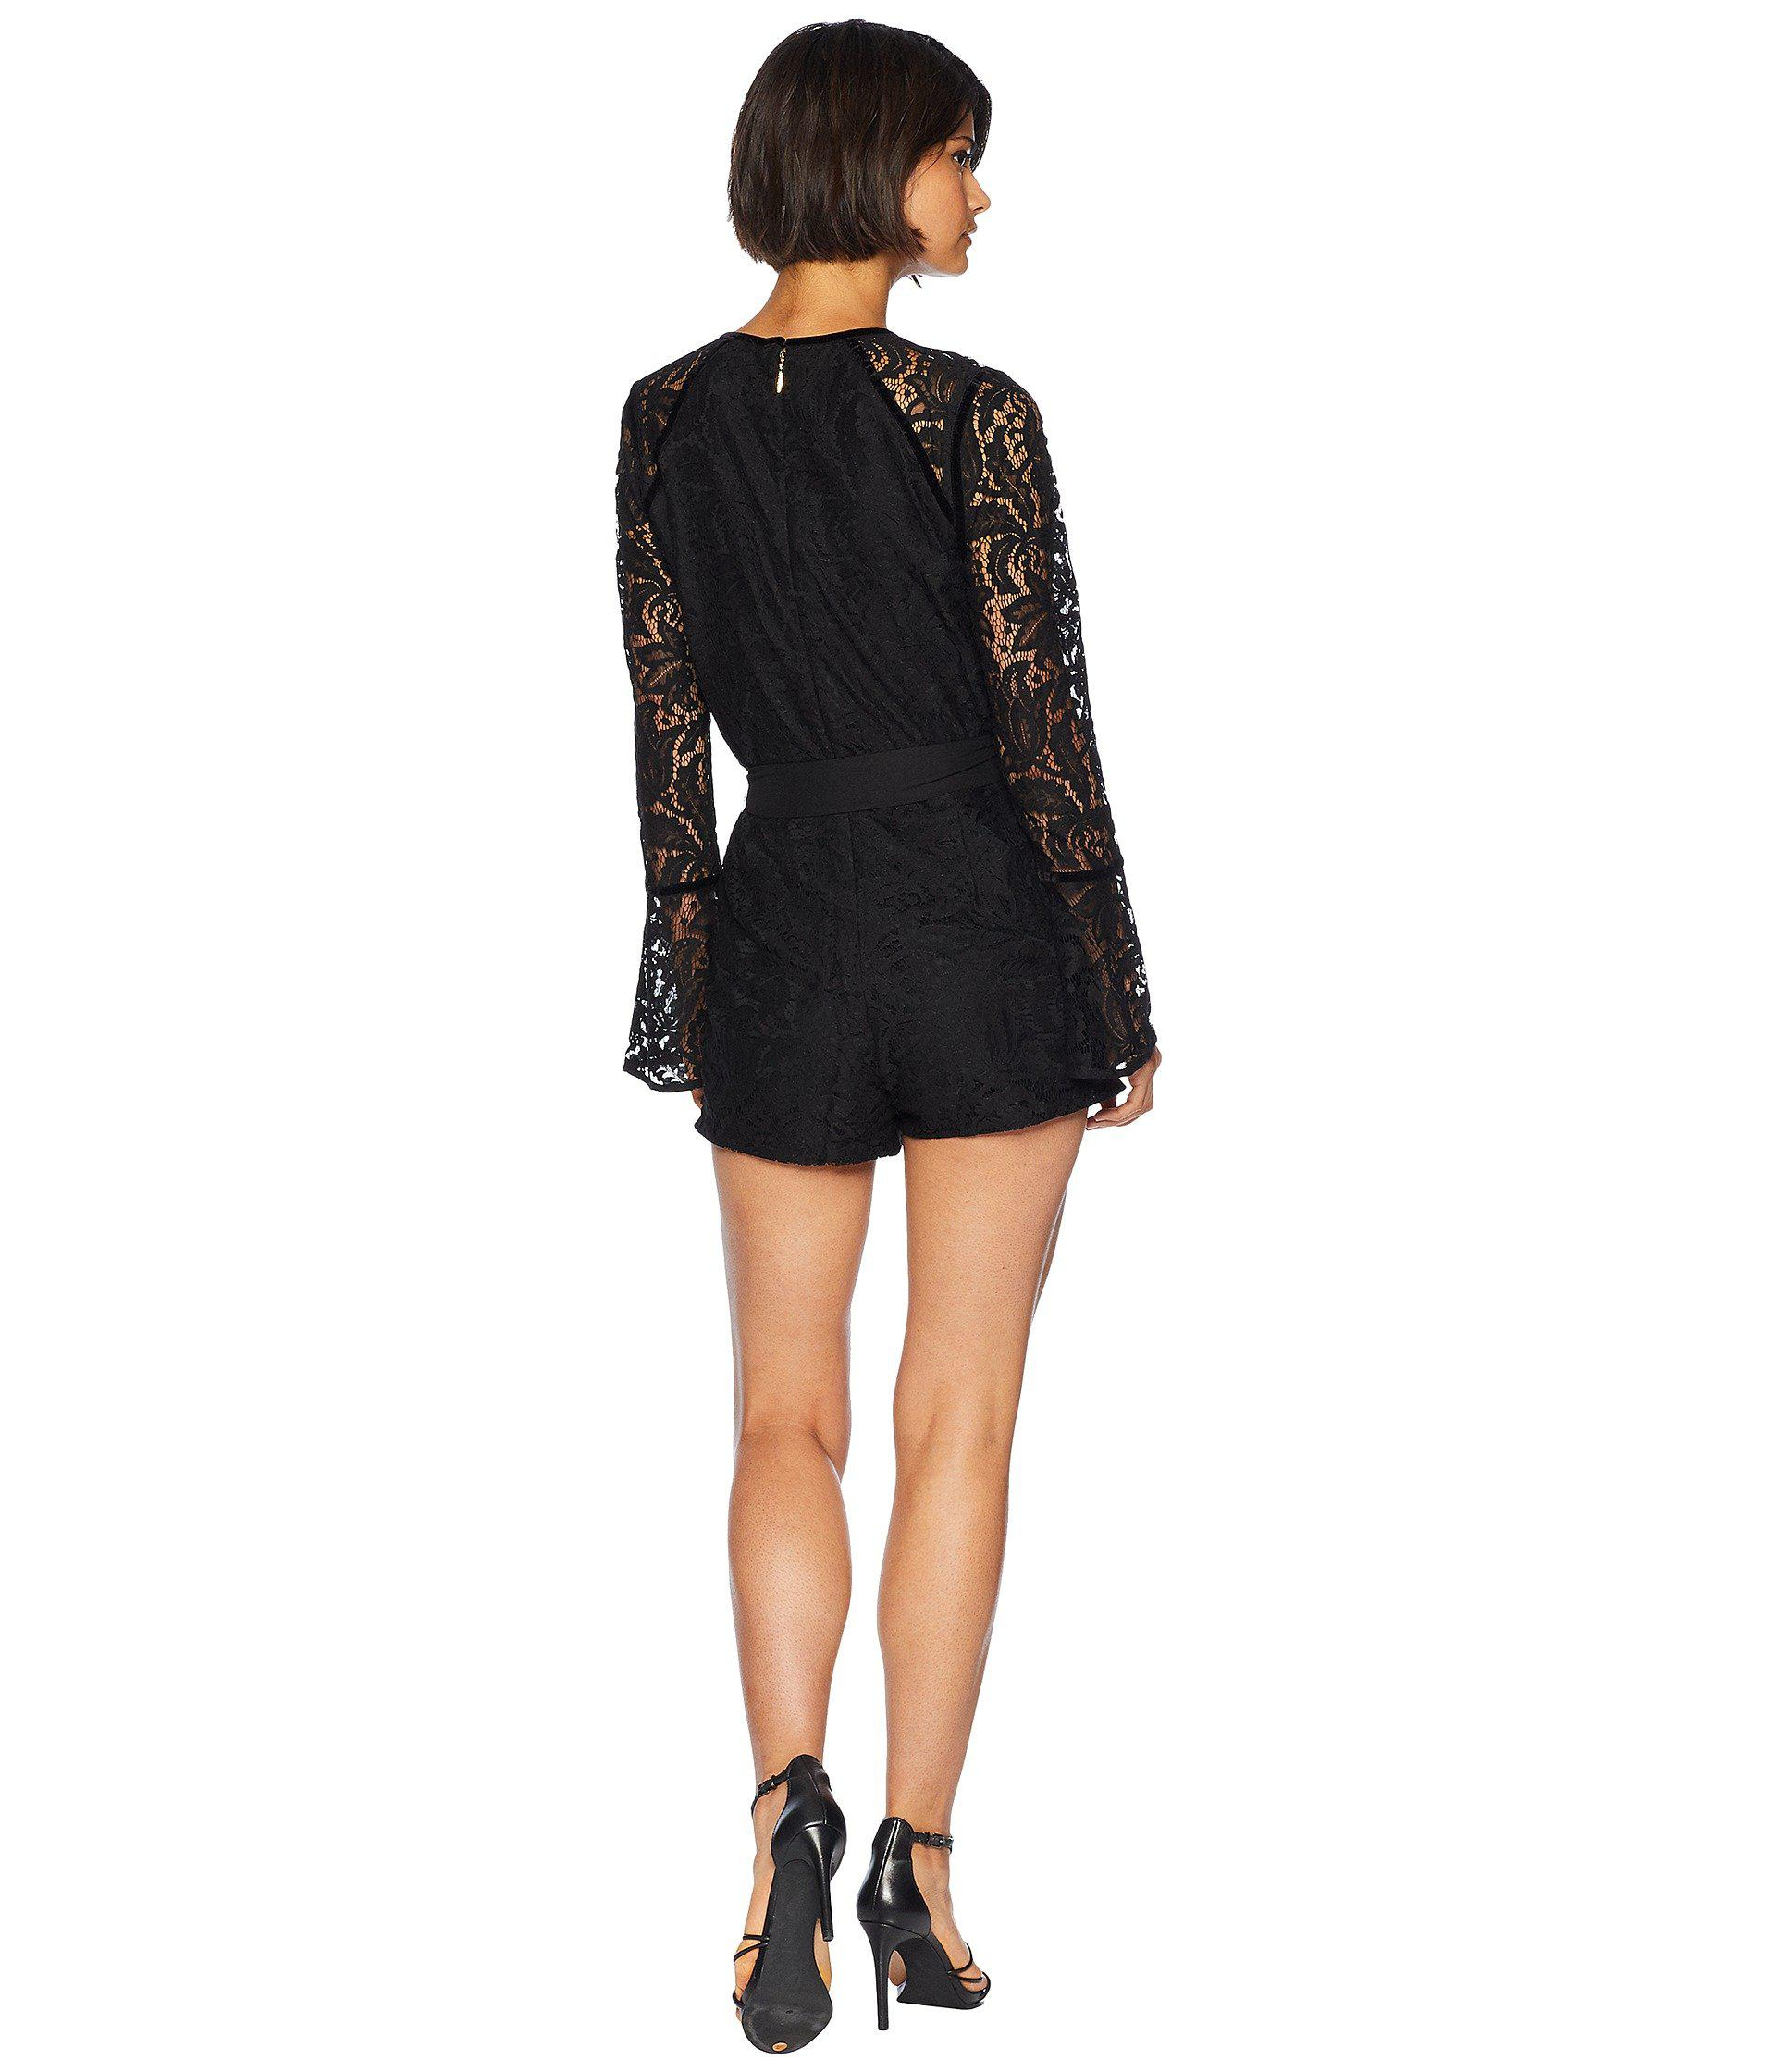 718dc6ba3e09 Lyst - Juicy Couture Knit Two-tone Leafy Lace Romper in Black